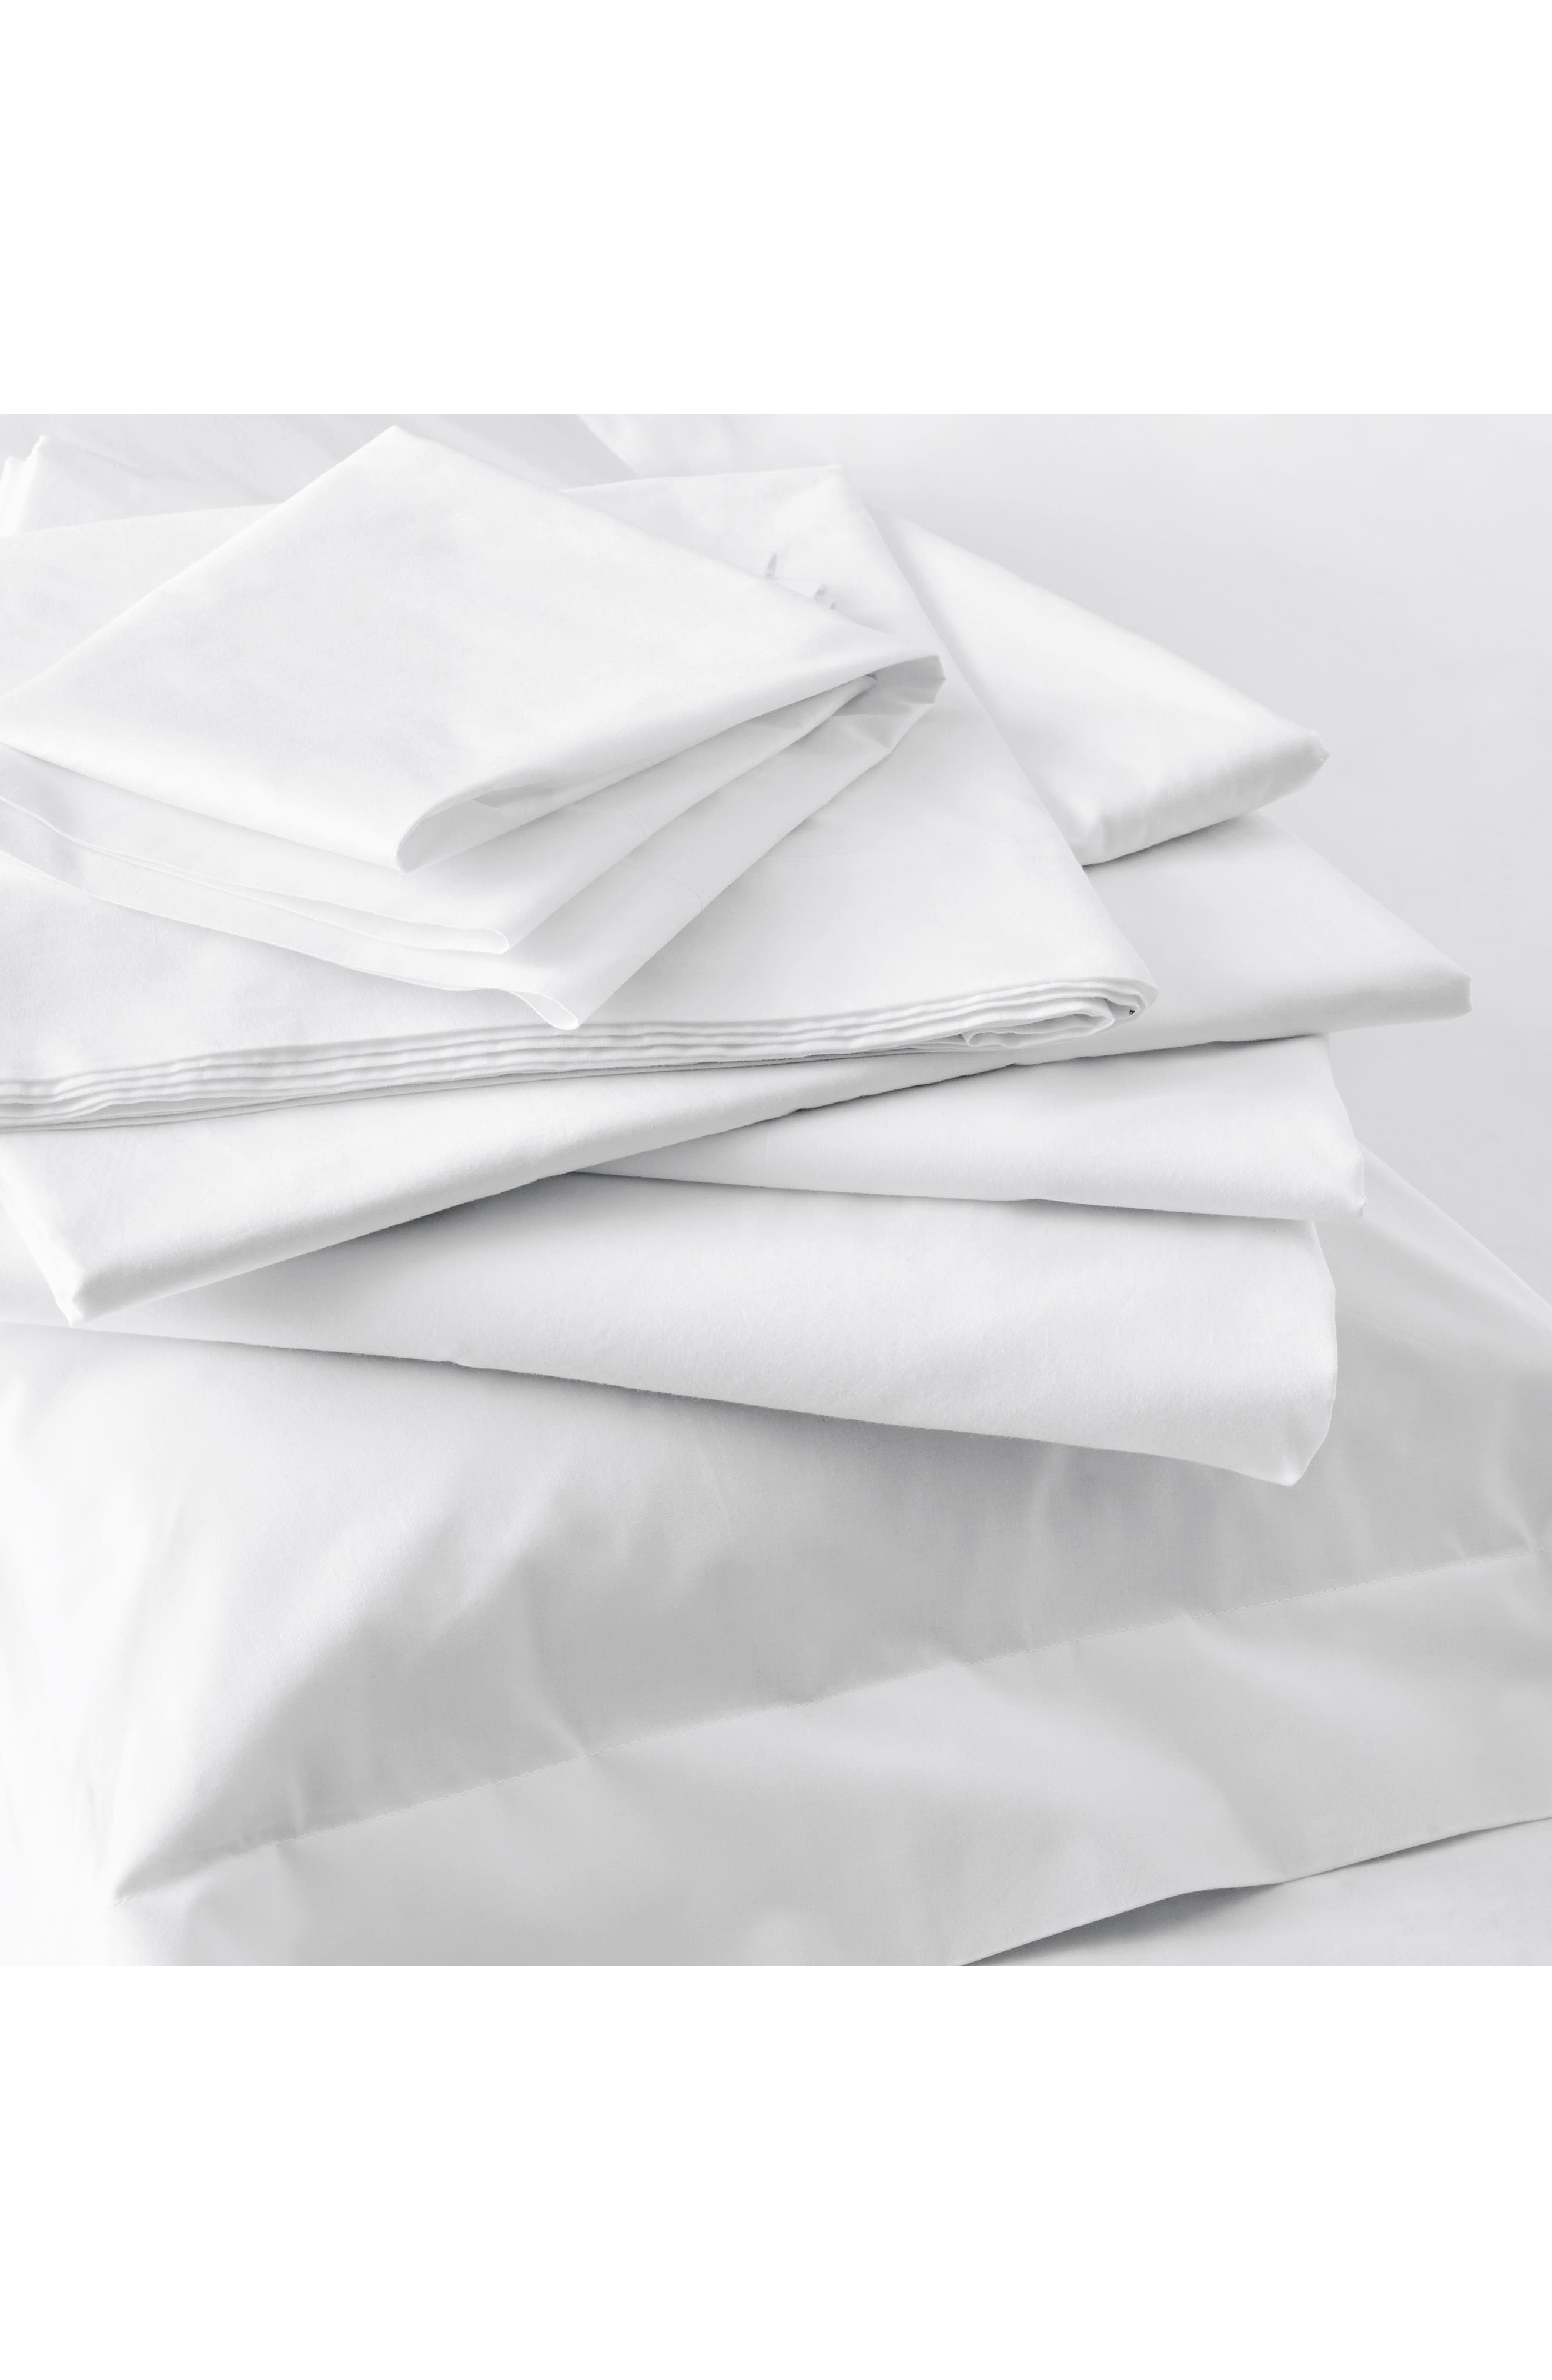 THE WHITE COMPANY,                             200 Thread Count Egyptian Cotton Oxford Set of 2 Shams,                             Alternate thumbnail 3, color,                             WHITE